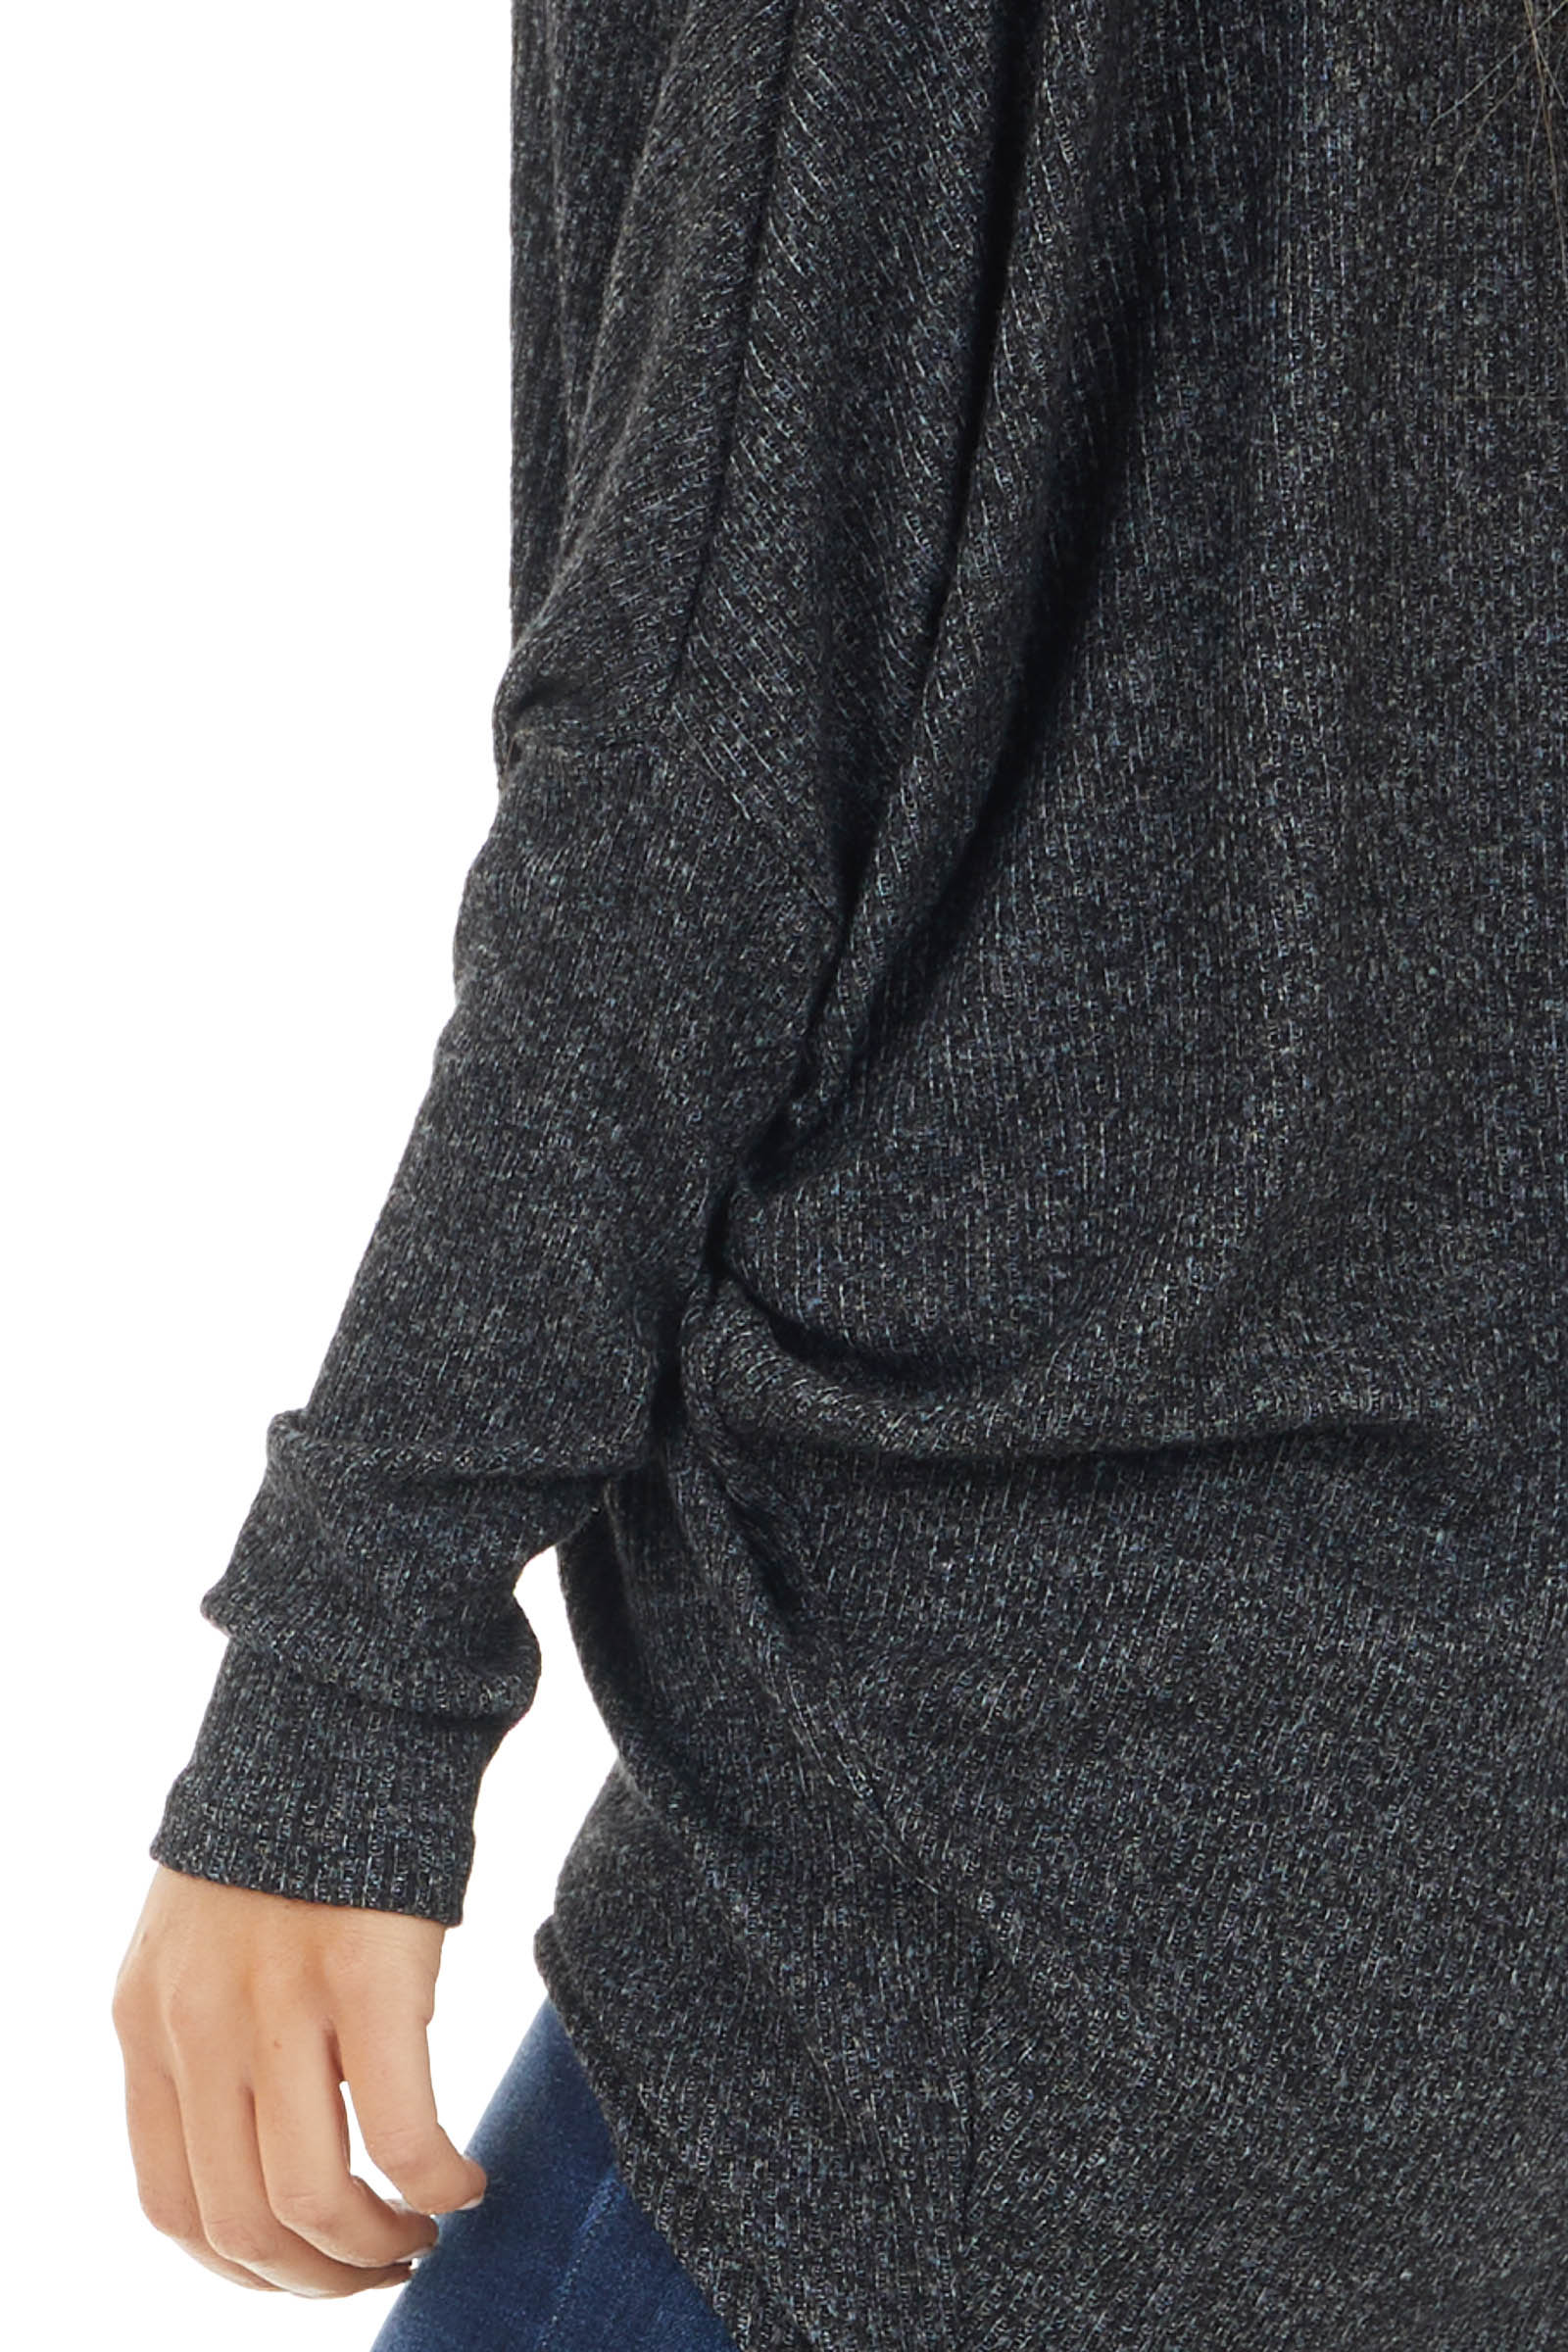 Heathered Charcoal Knit Top with Long Dolman Sleeves